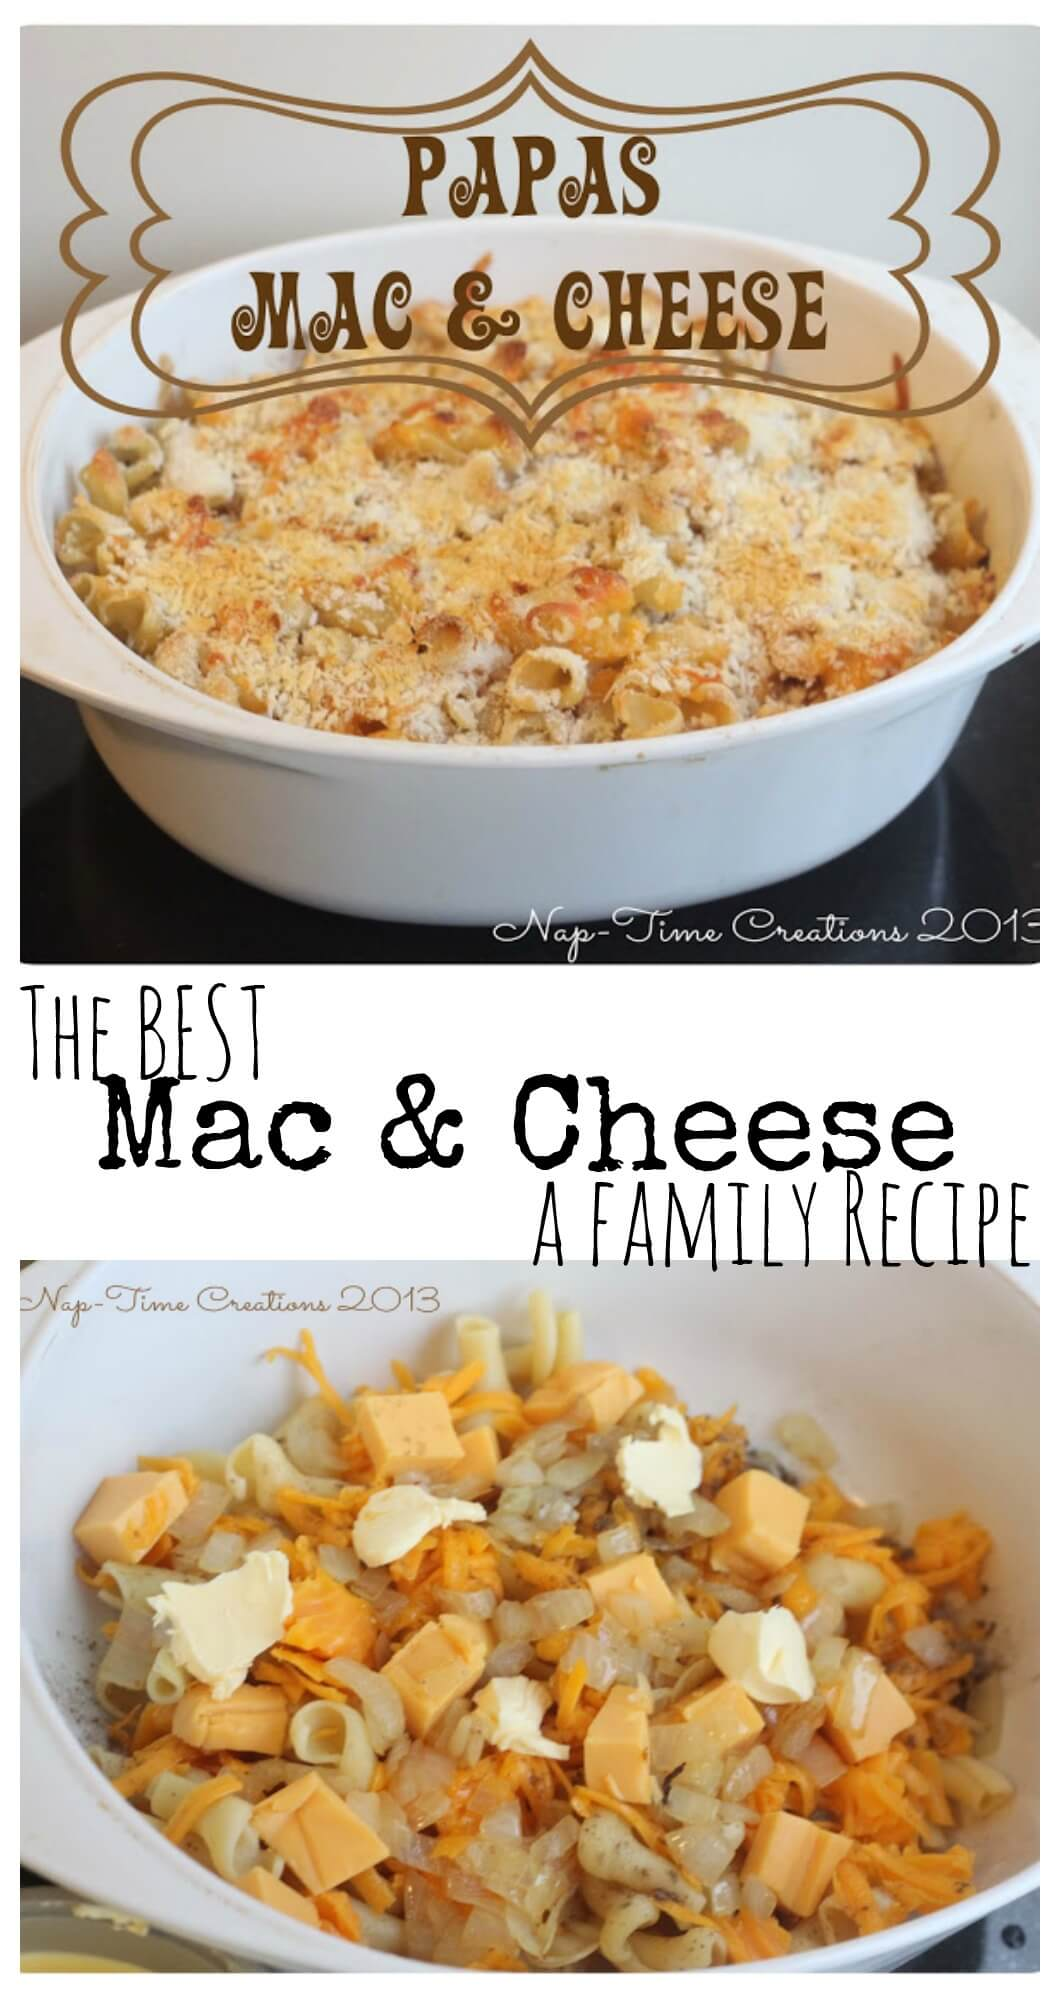 Baked Mac and Cheese Recipe from Nap-Time Creations.com